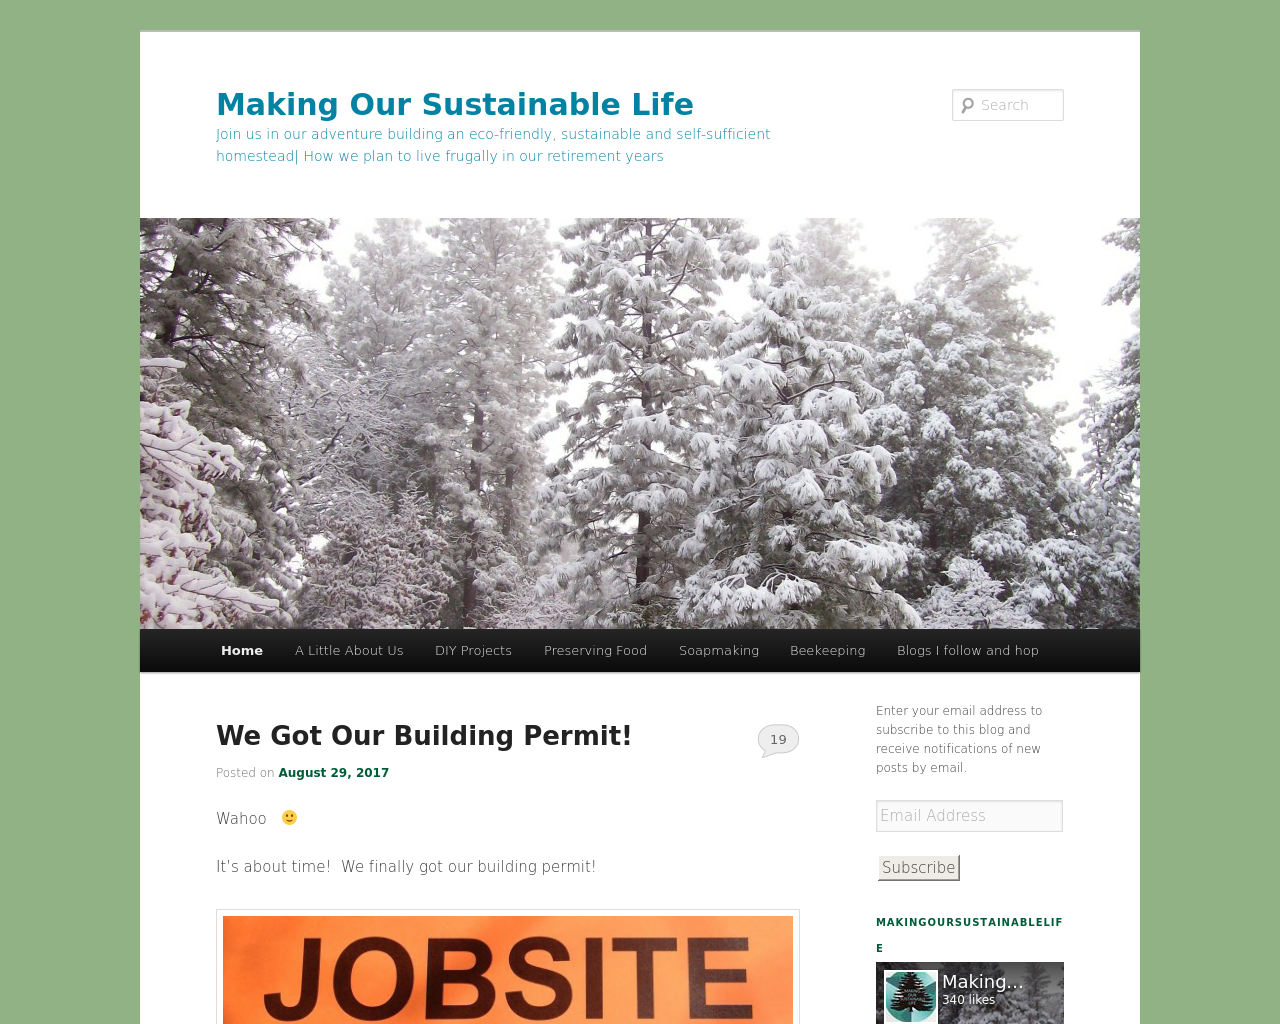 Making-Our-Sustainable-Life-Advertising-Reviews-Pricing